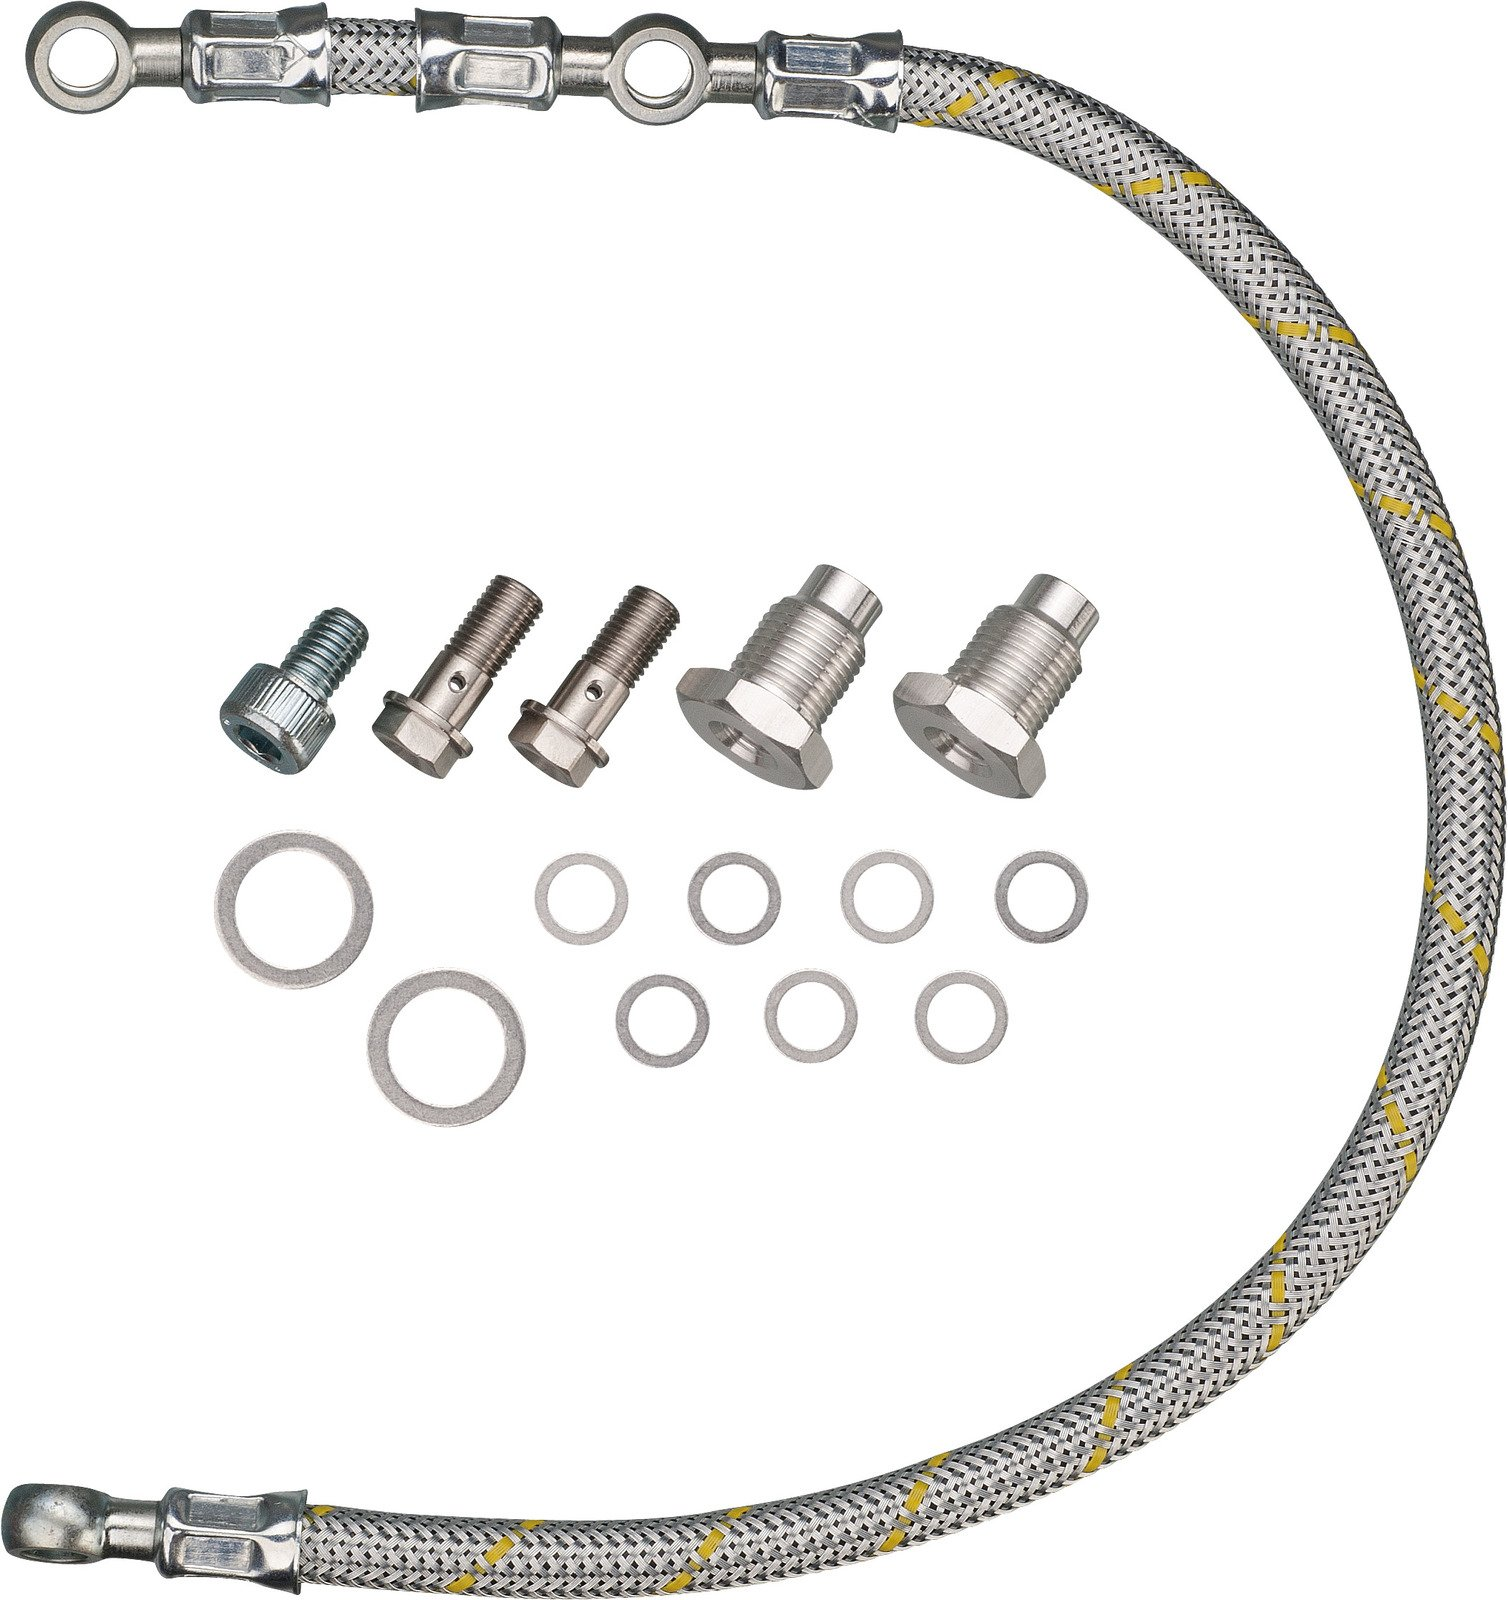 Yamaha SR400 SR500 HL500 TT500 XT500 Twin Feed Oil Line Kit - Steel Braided Silver Race Line Style  02-017